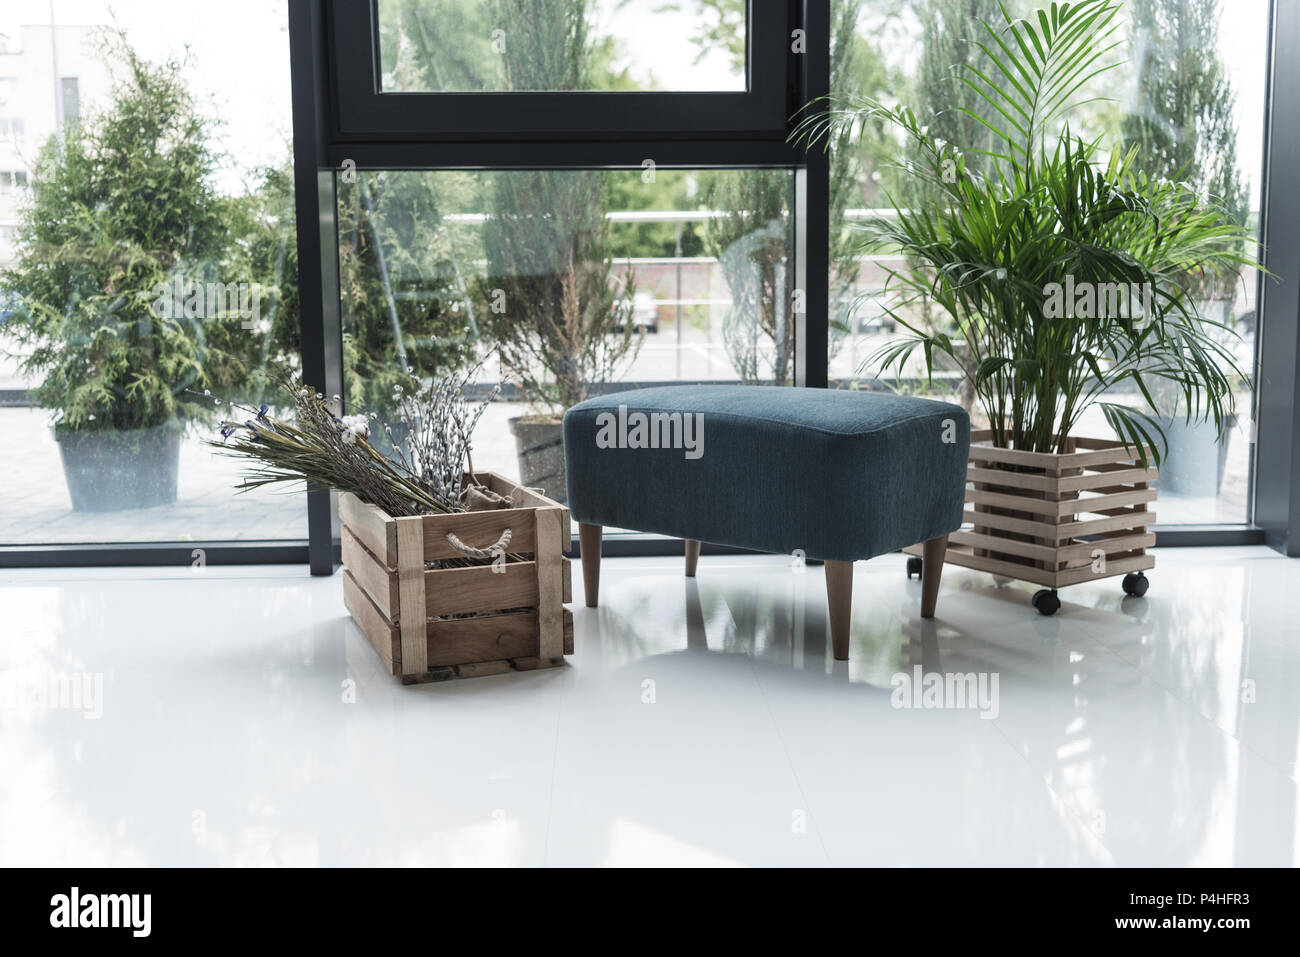 interior of empty creative office with chair and dry flowers in wooden box - Stock Image